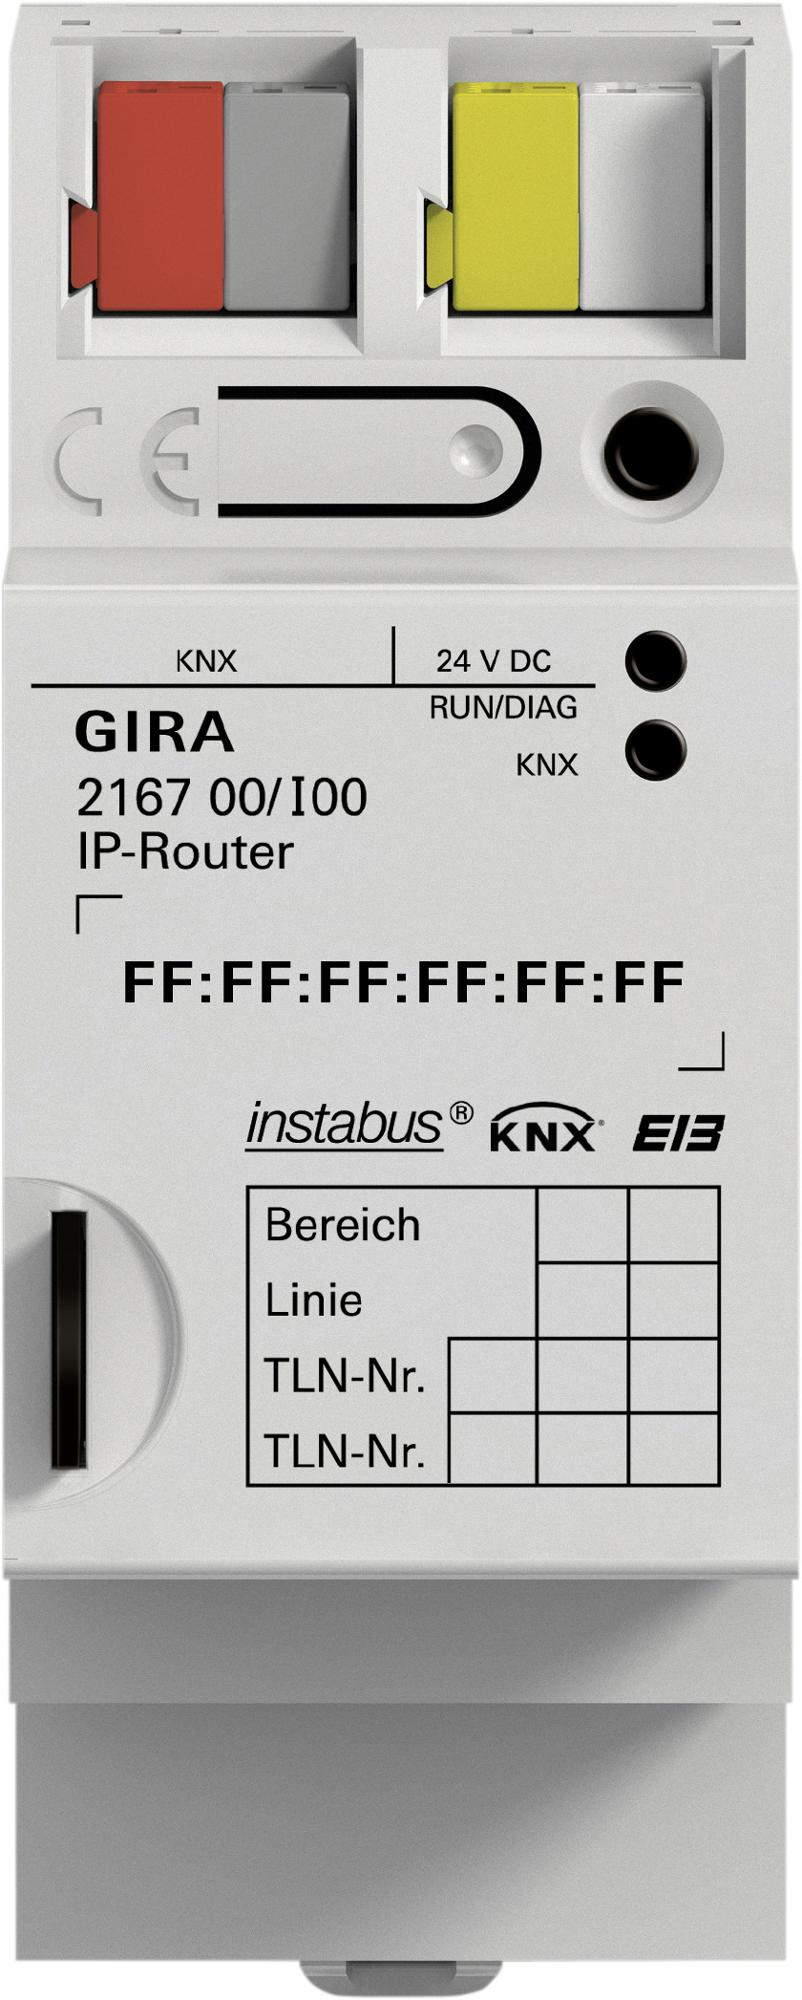 knx ip router gira 216700 von gira premium bei elektroshop wagner. Black Bedroom Furniture Sets. Home Design Ideas